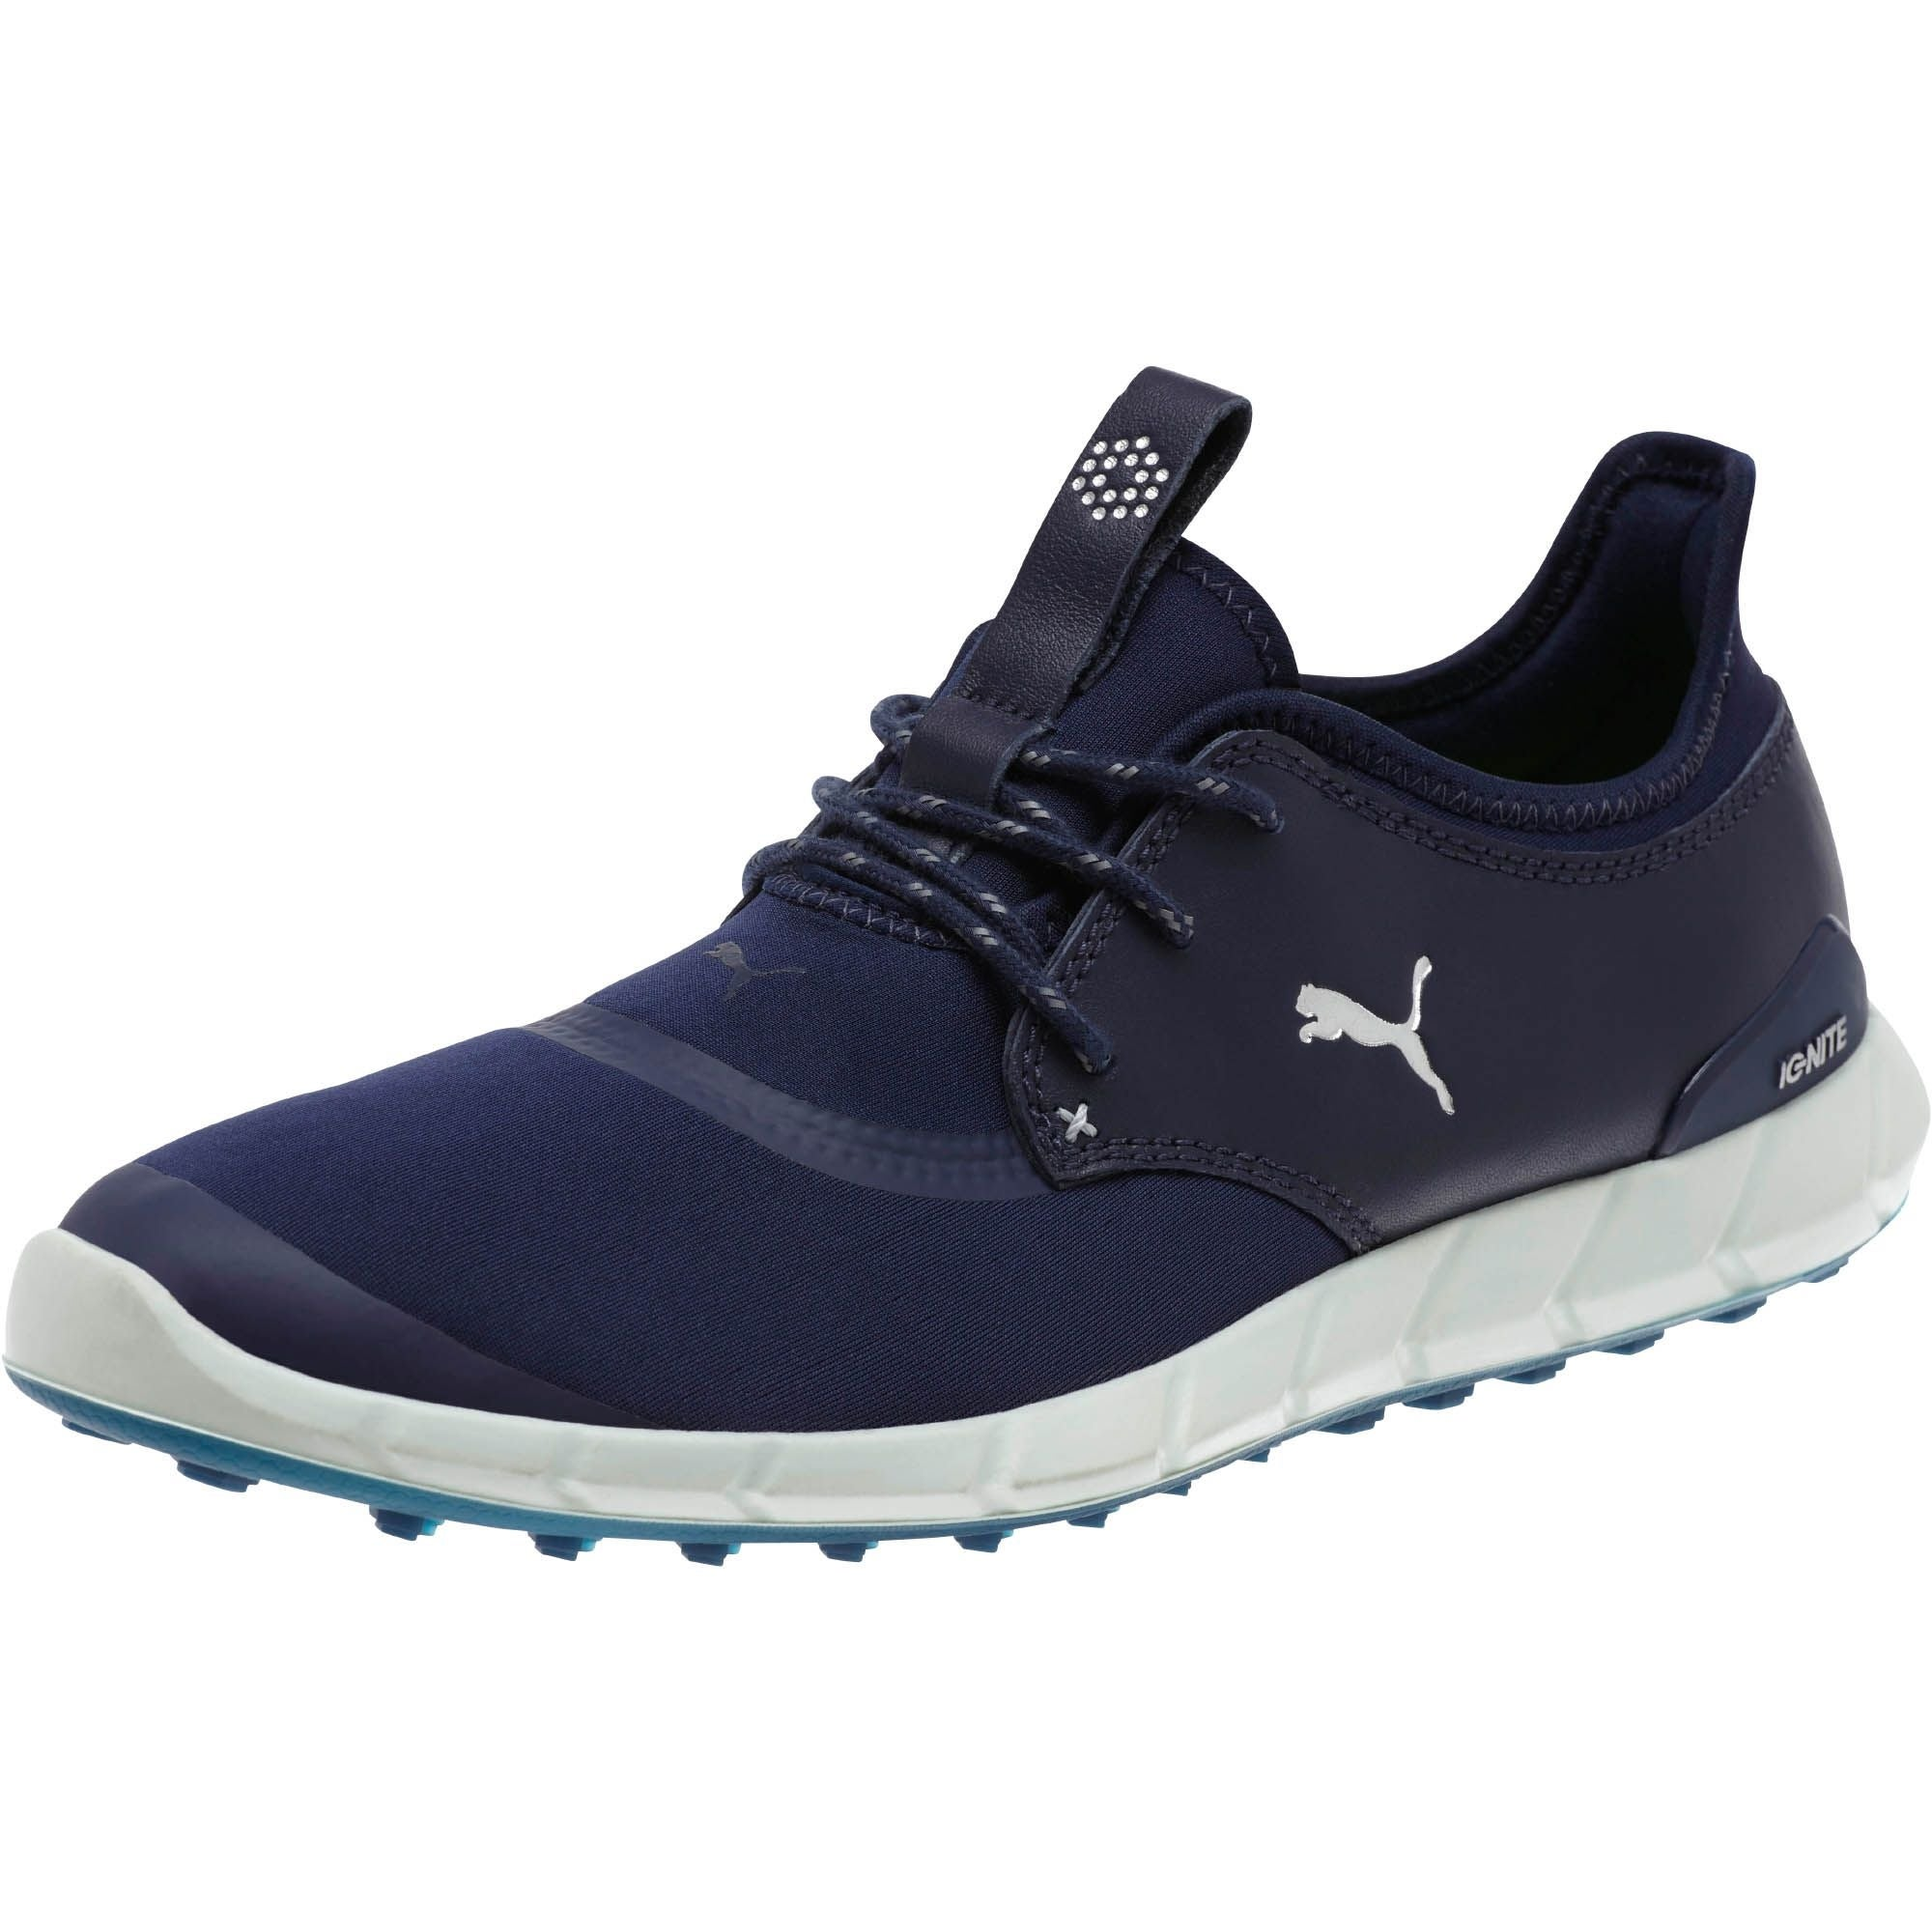 Shop Puma Men s Ignite Spikeless Sport Peacoat Navy Silver  White Golf  Shoes 189416-03 - Free Shipping Today - Overstock - 20059182 a033d449c